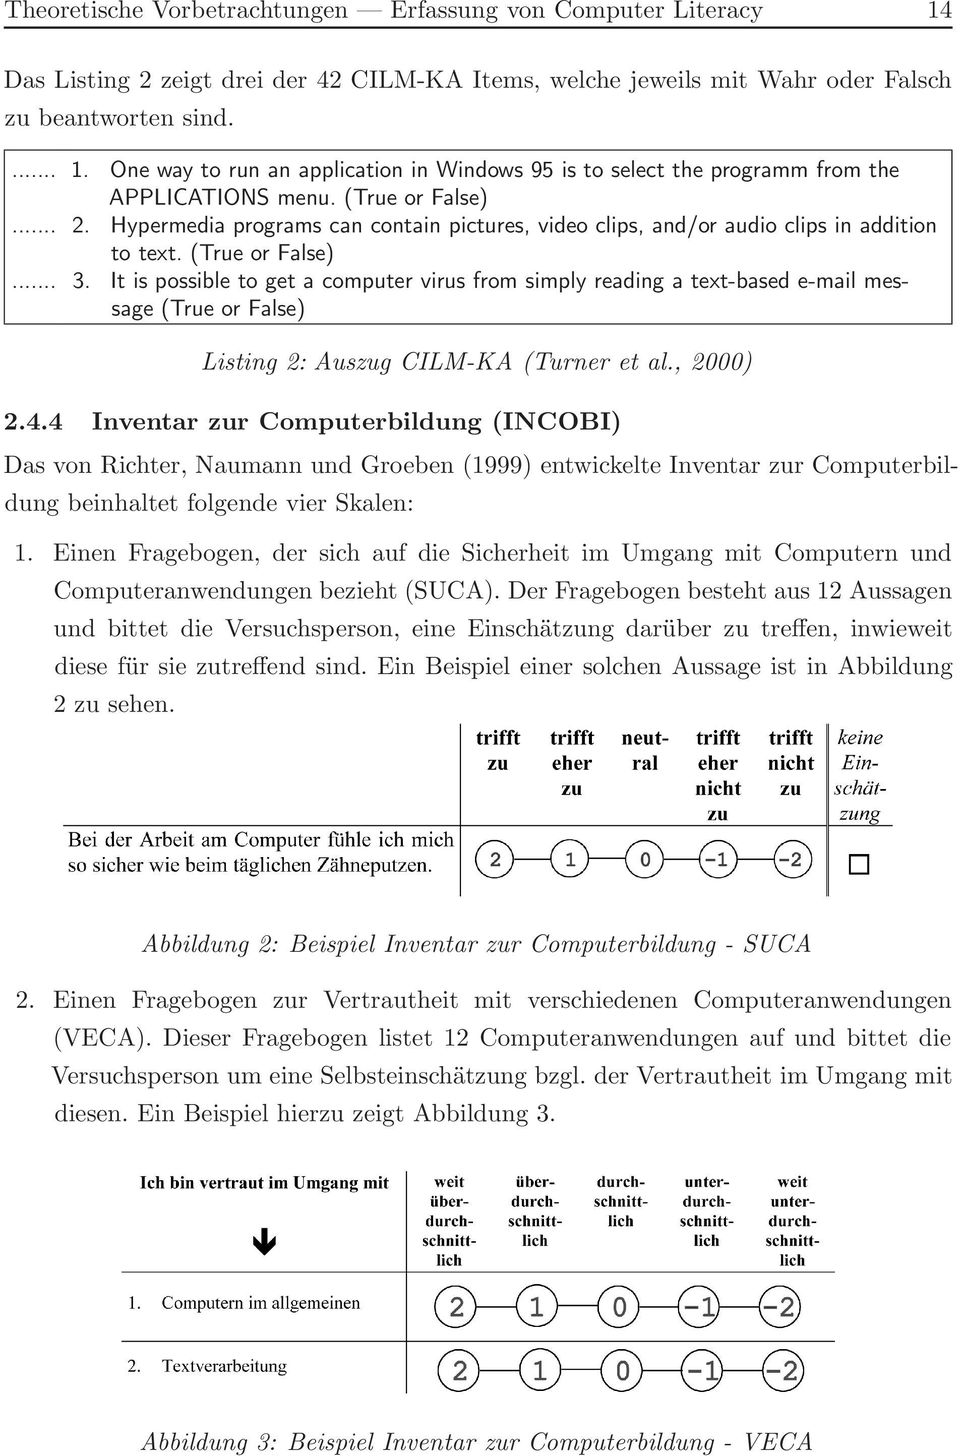 It is possible to get a computer virus from simply reading a text-based e-mail message (True or False) Listing 2: Auszug CILM-KA (Turner et al., 2000) 2.4.